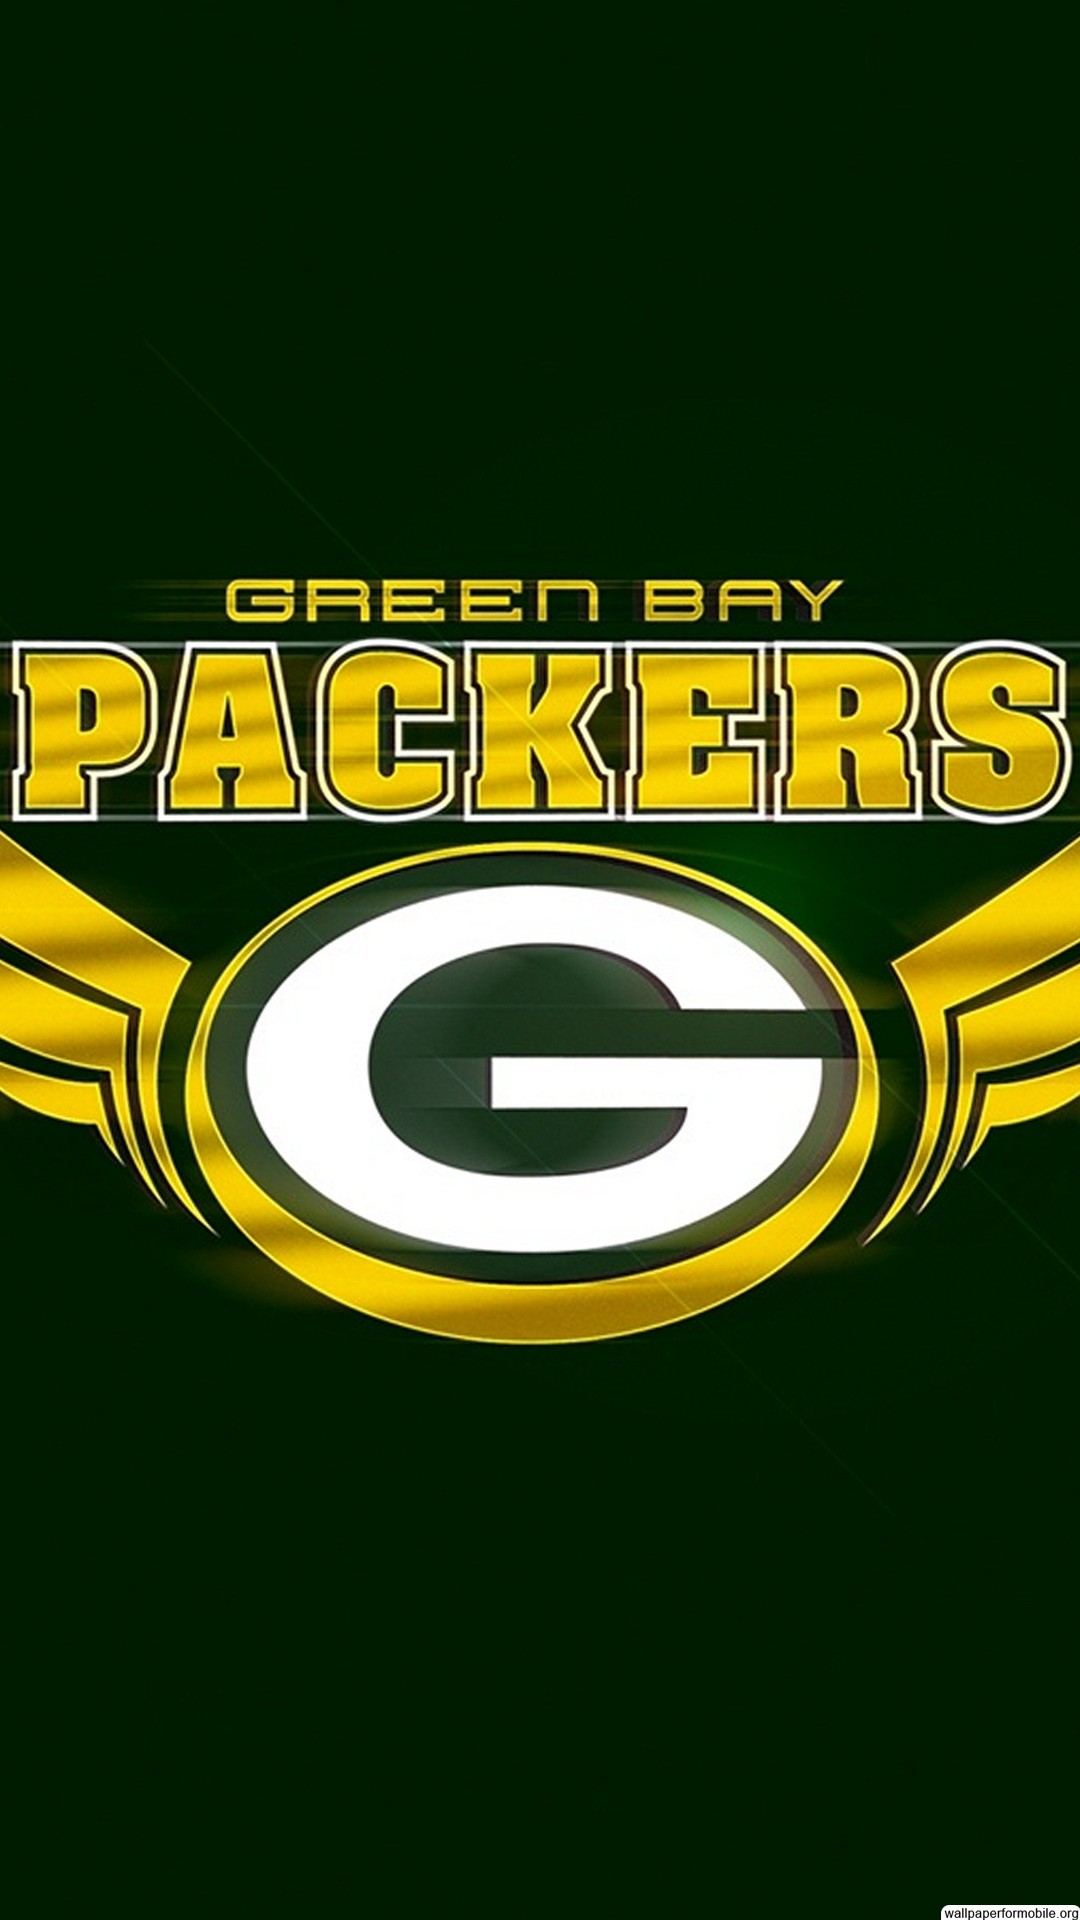 Green Bay Packers Wallpaper (65+ images)